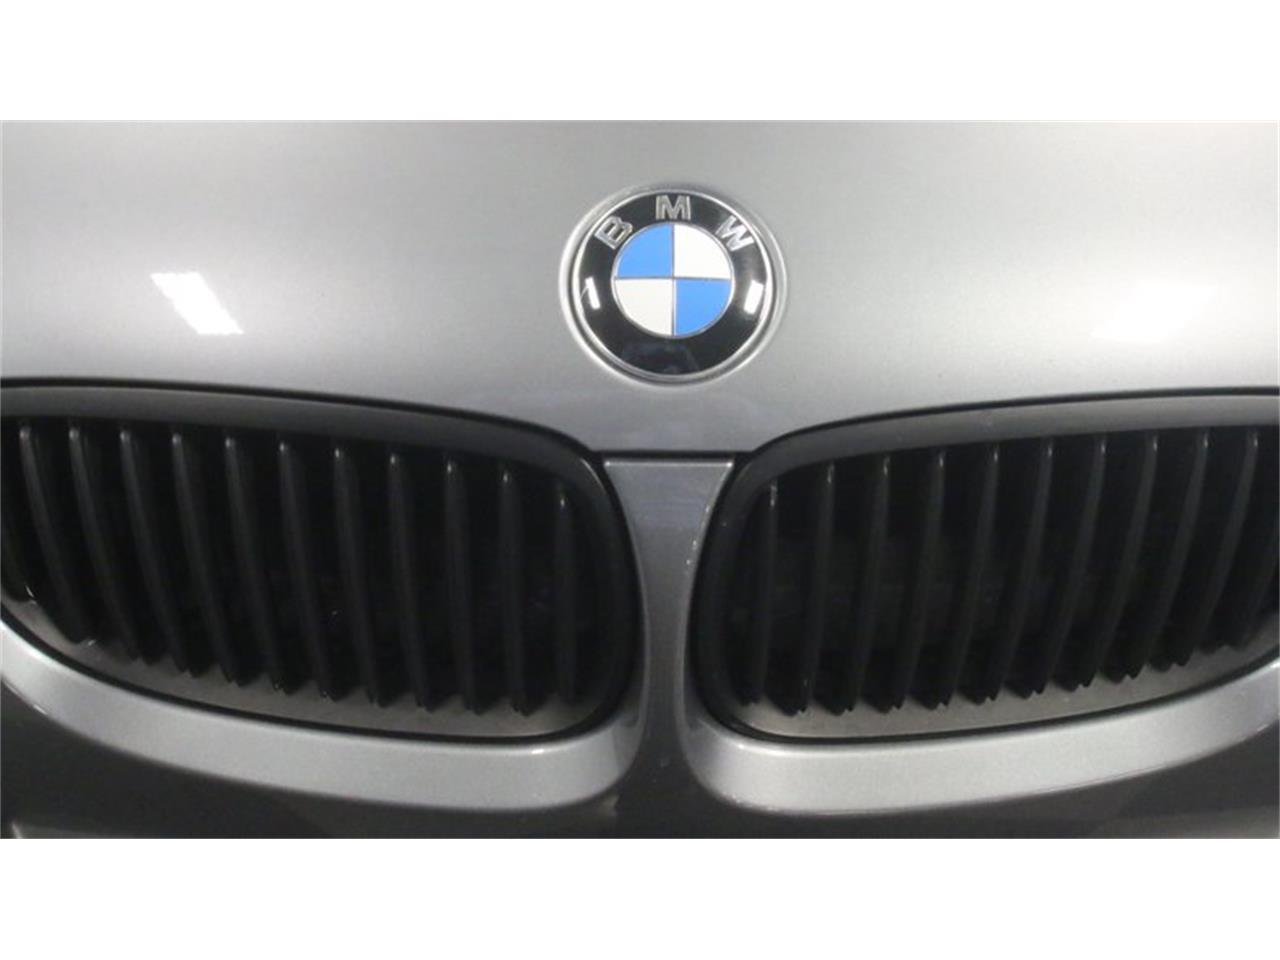 2010 BMW M3 for sale in Lithia Springs, GA – photo 80